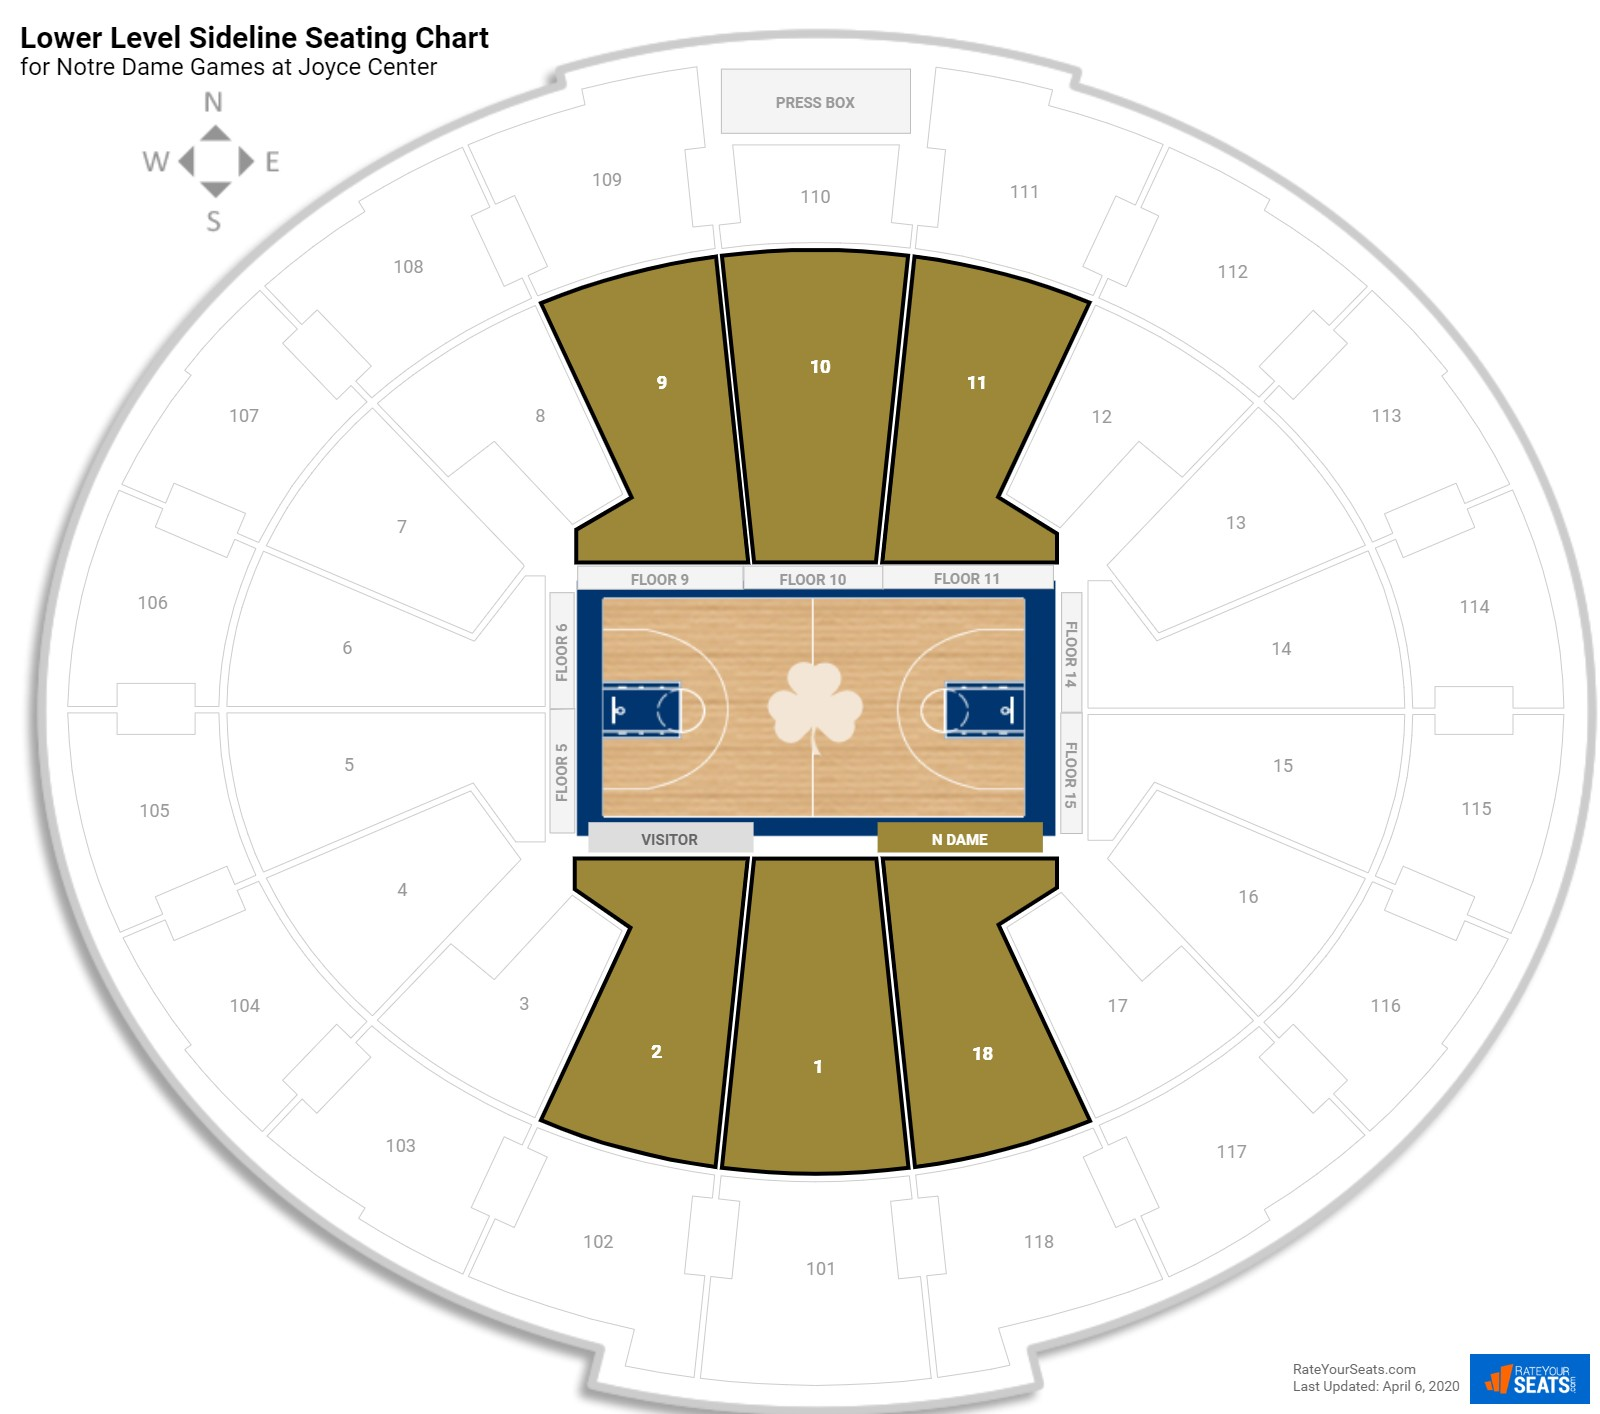 Joyce Center (Notre Dame) Seating Guide